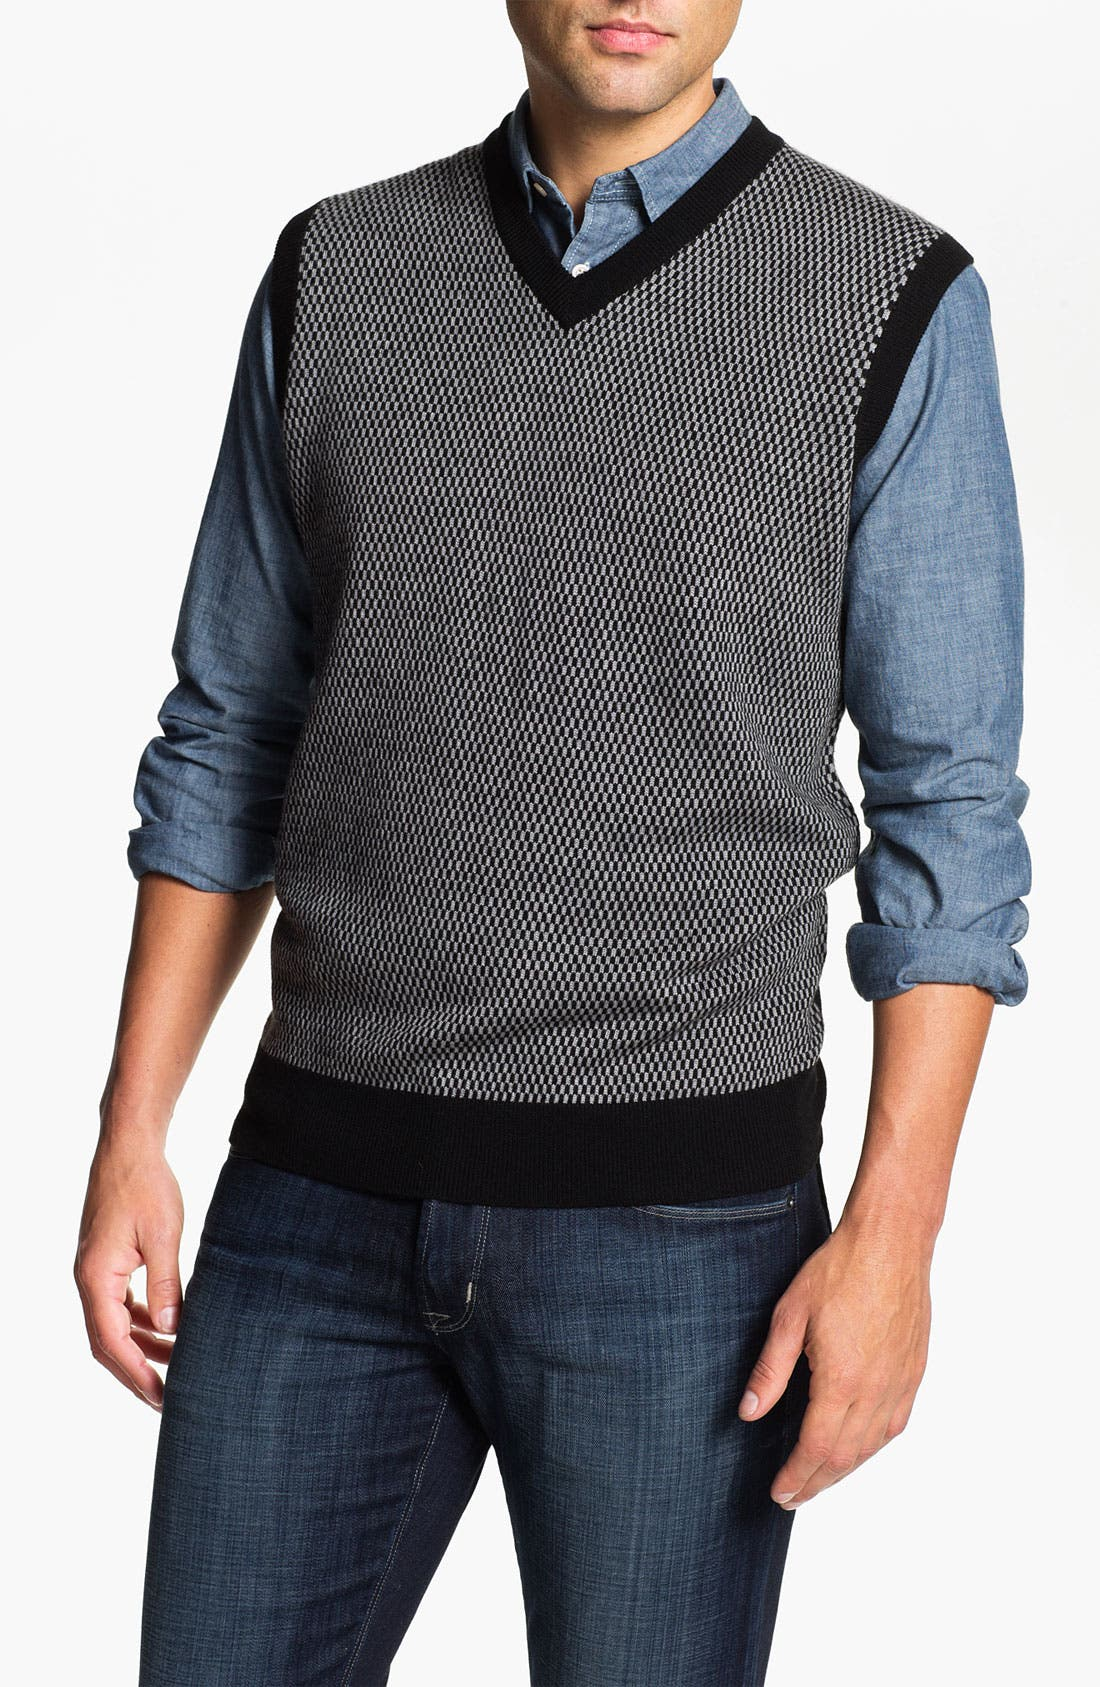 Main Image - Toscano Merino Wool Blend Sweater Vest